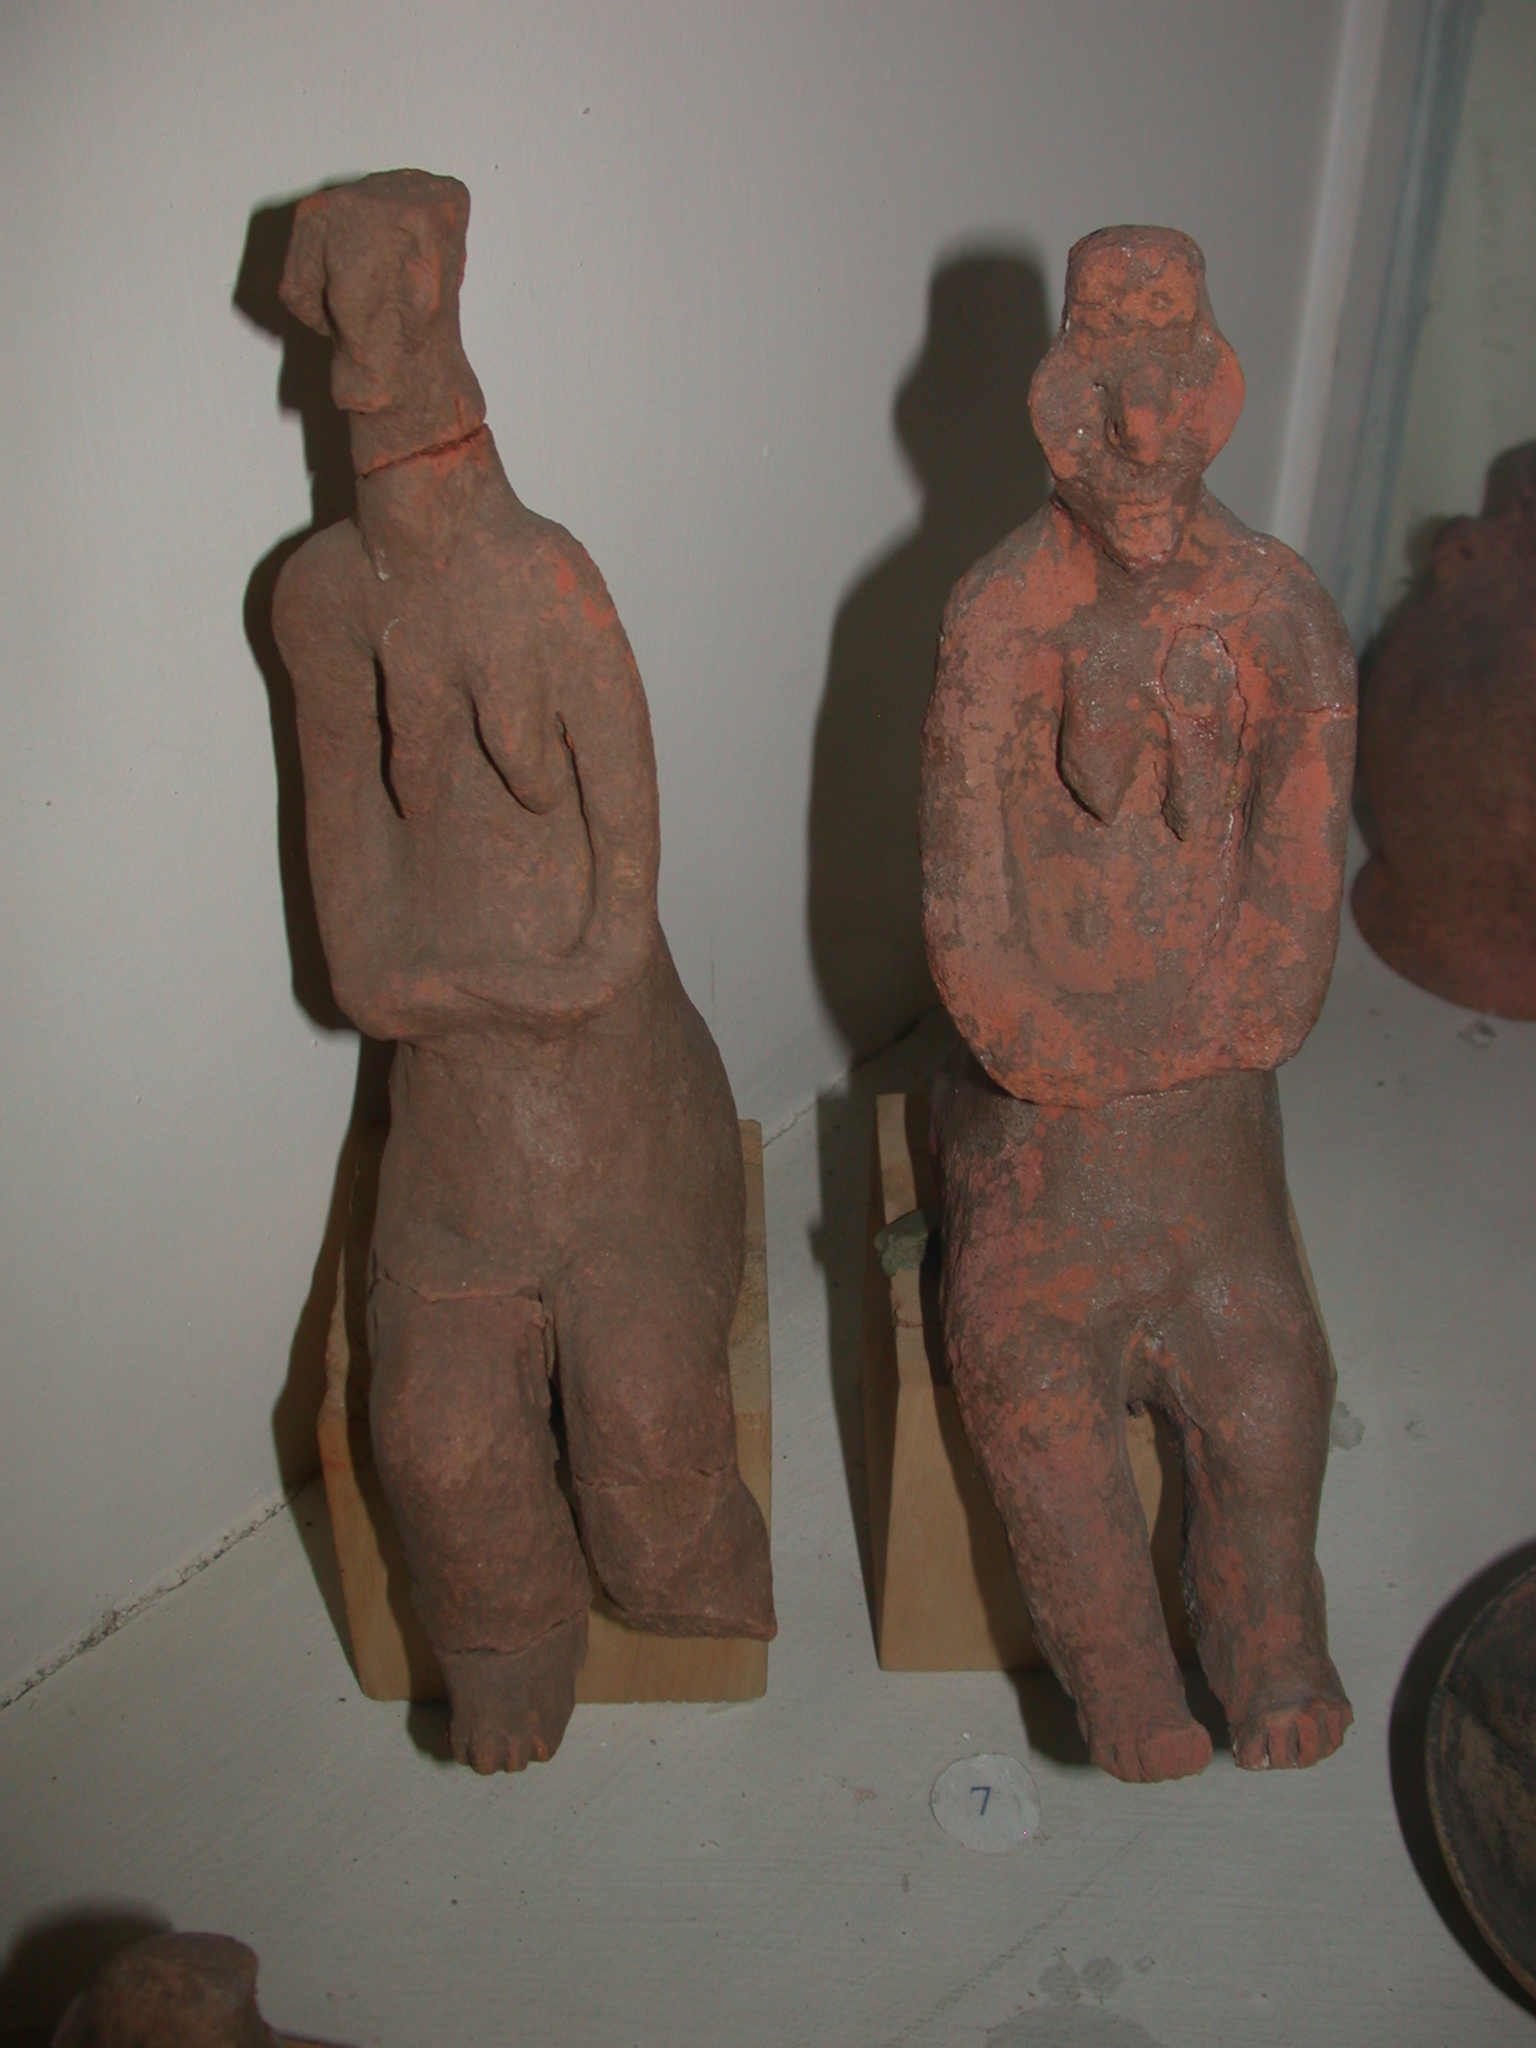 Two Red Earthenware Female Figures, 2nd Half of 1st Millenium BCE, Hawlti, Tigrai, Now Located in National Museum, Addis Ababa, Ethiopia